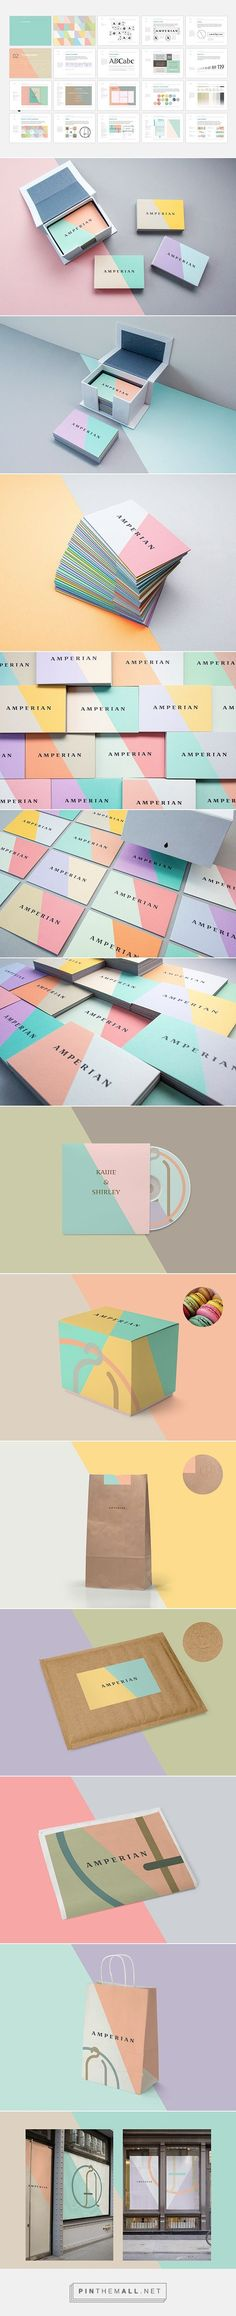 Color blocking #stationery design. Love the business cards and packaging especially.: (Business Card Mockup Originals)